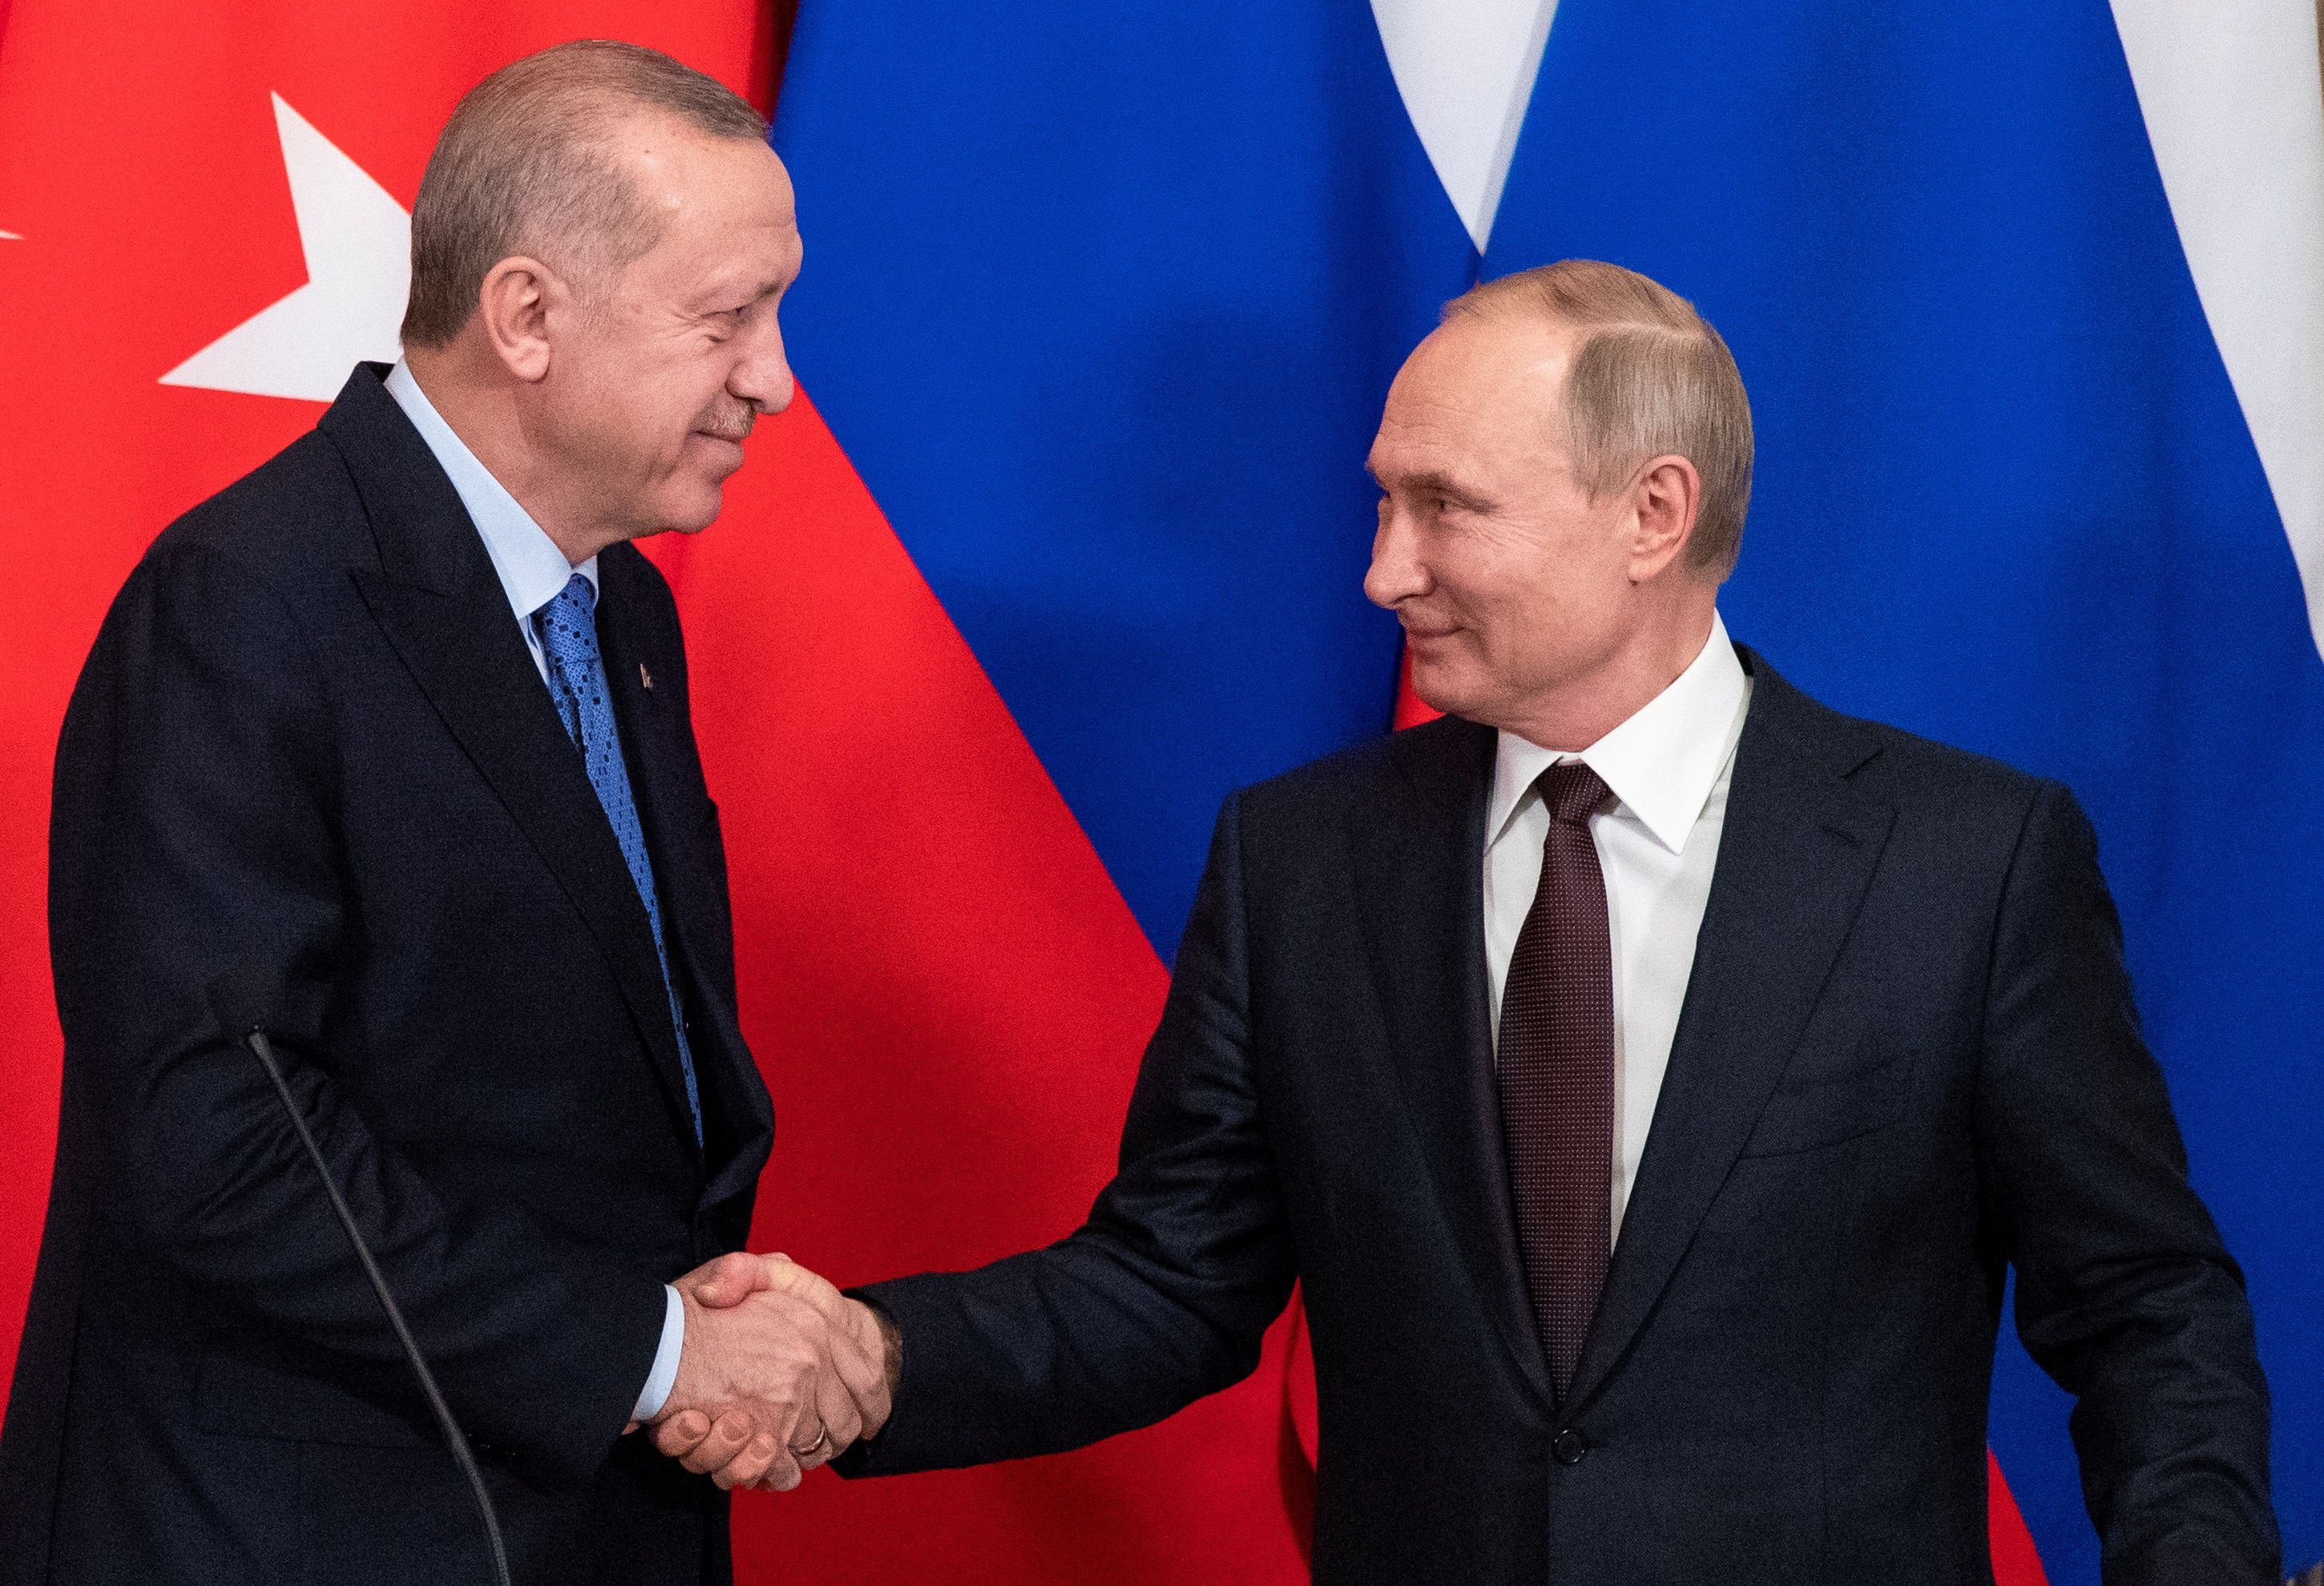 Russian President Vladimir Putin and Turkish President Tayyip Erdogan shake hands during a news conference following their talks in Moscow, Russia March 5, 2020. Pavel Golovkin/Pool via REUTERS